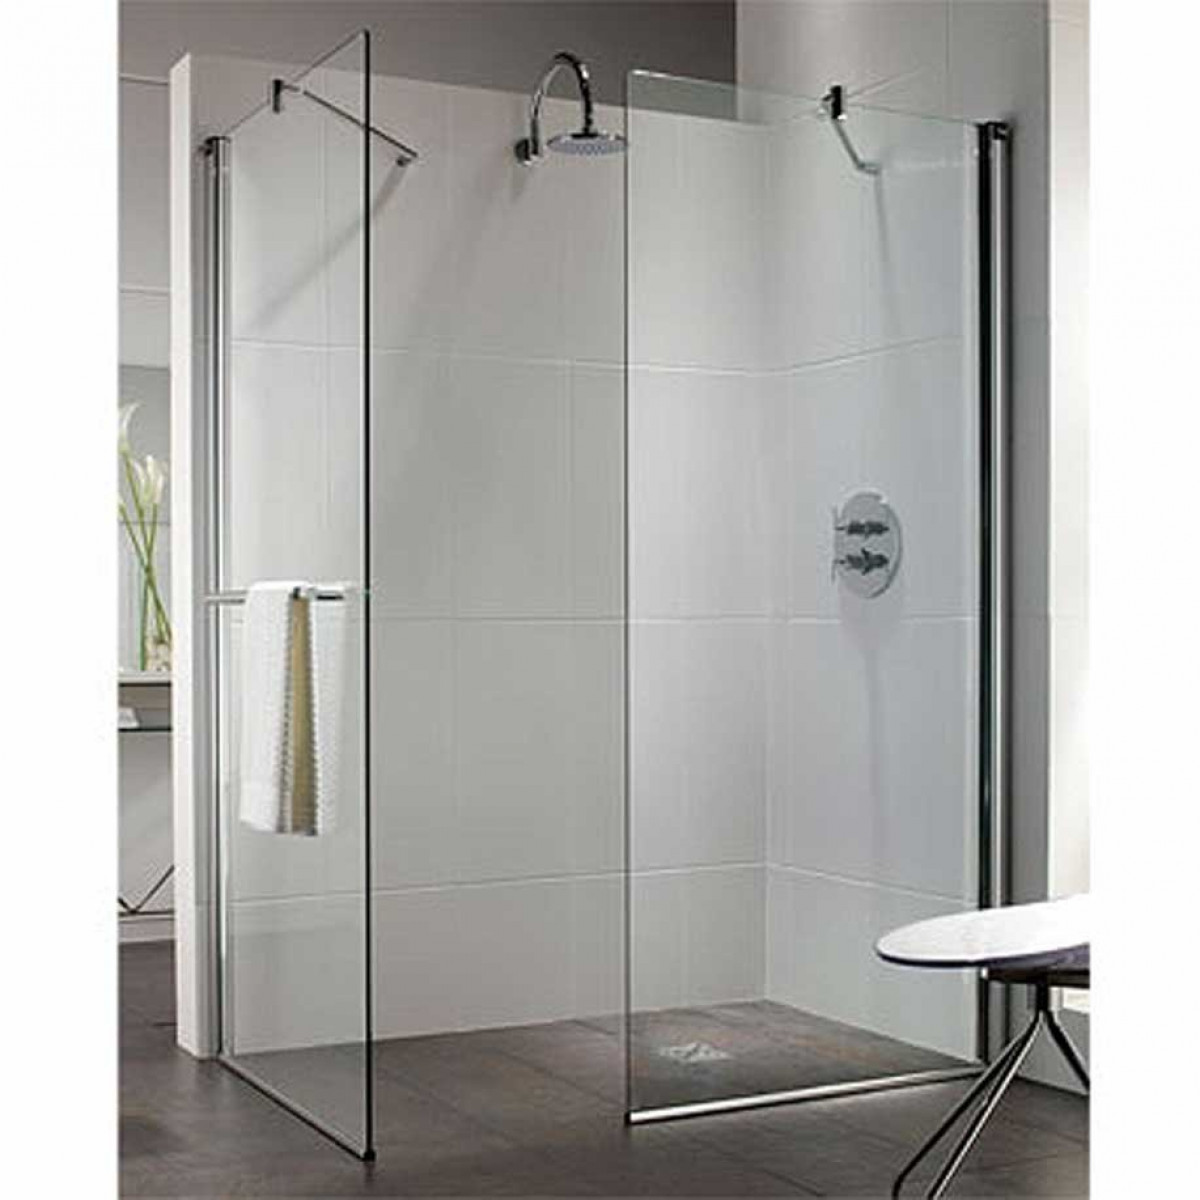 Twyford Hydr8 Walk in Flat Shower Panels -